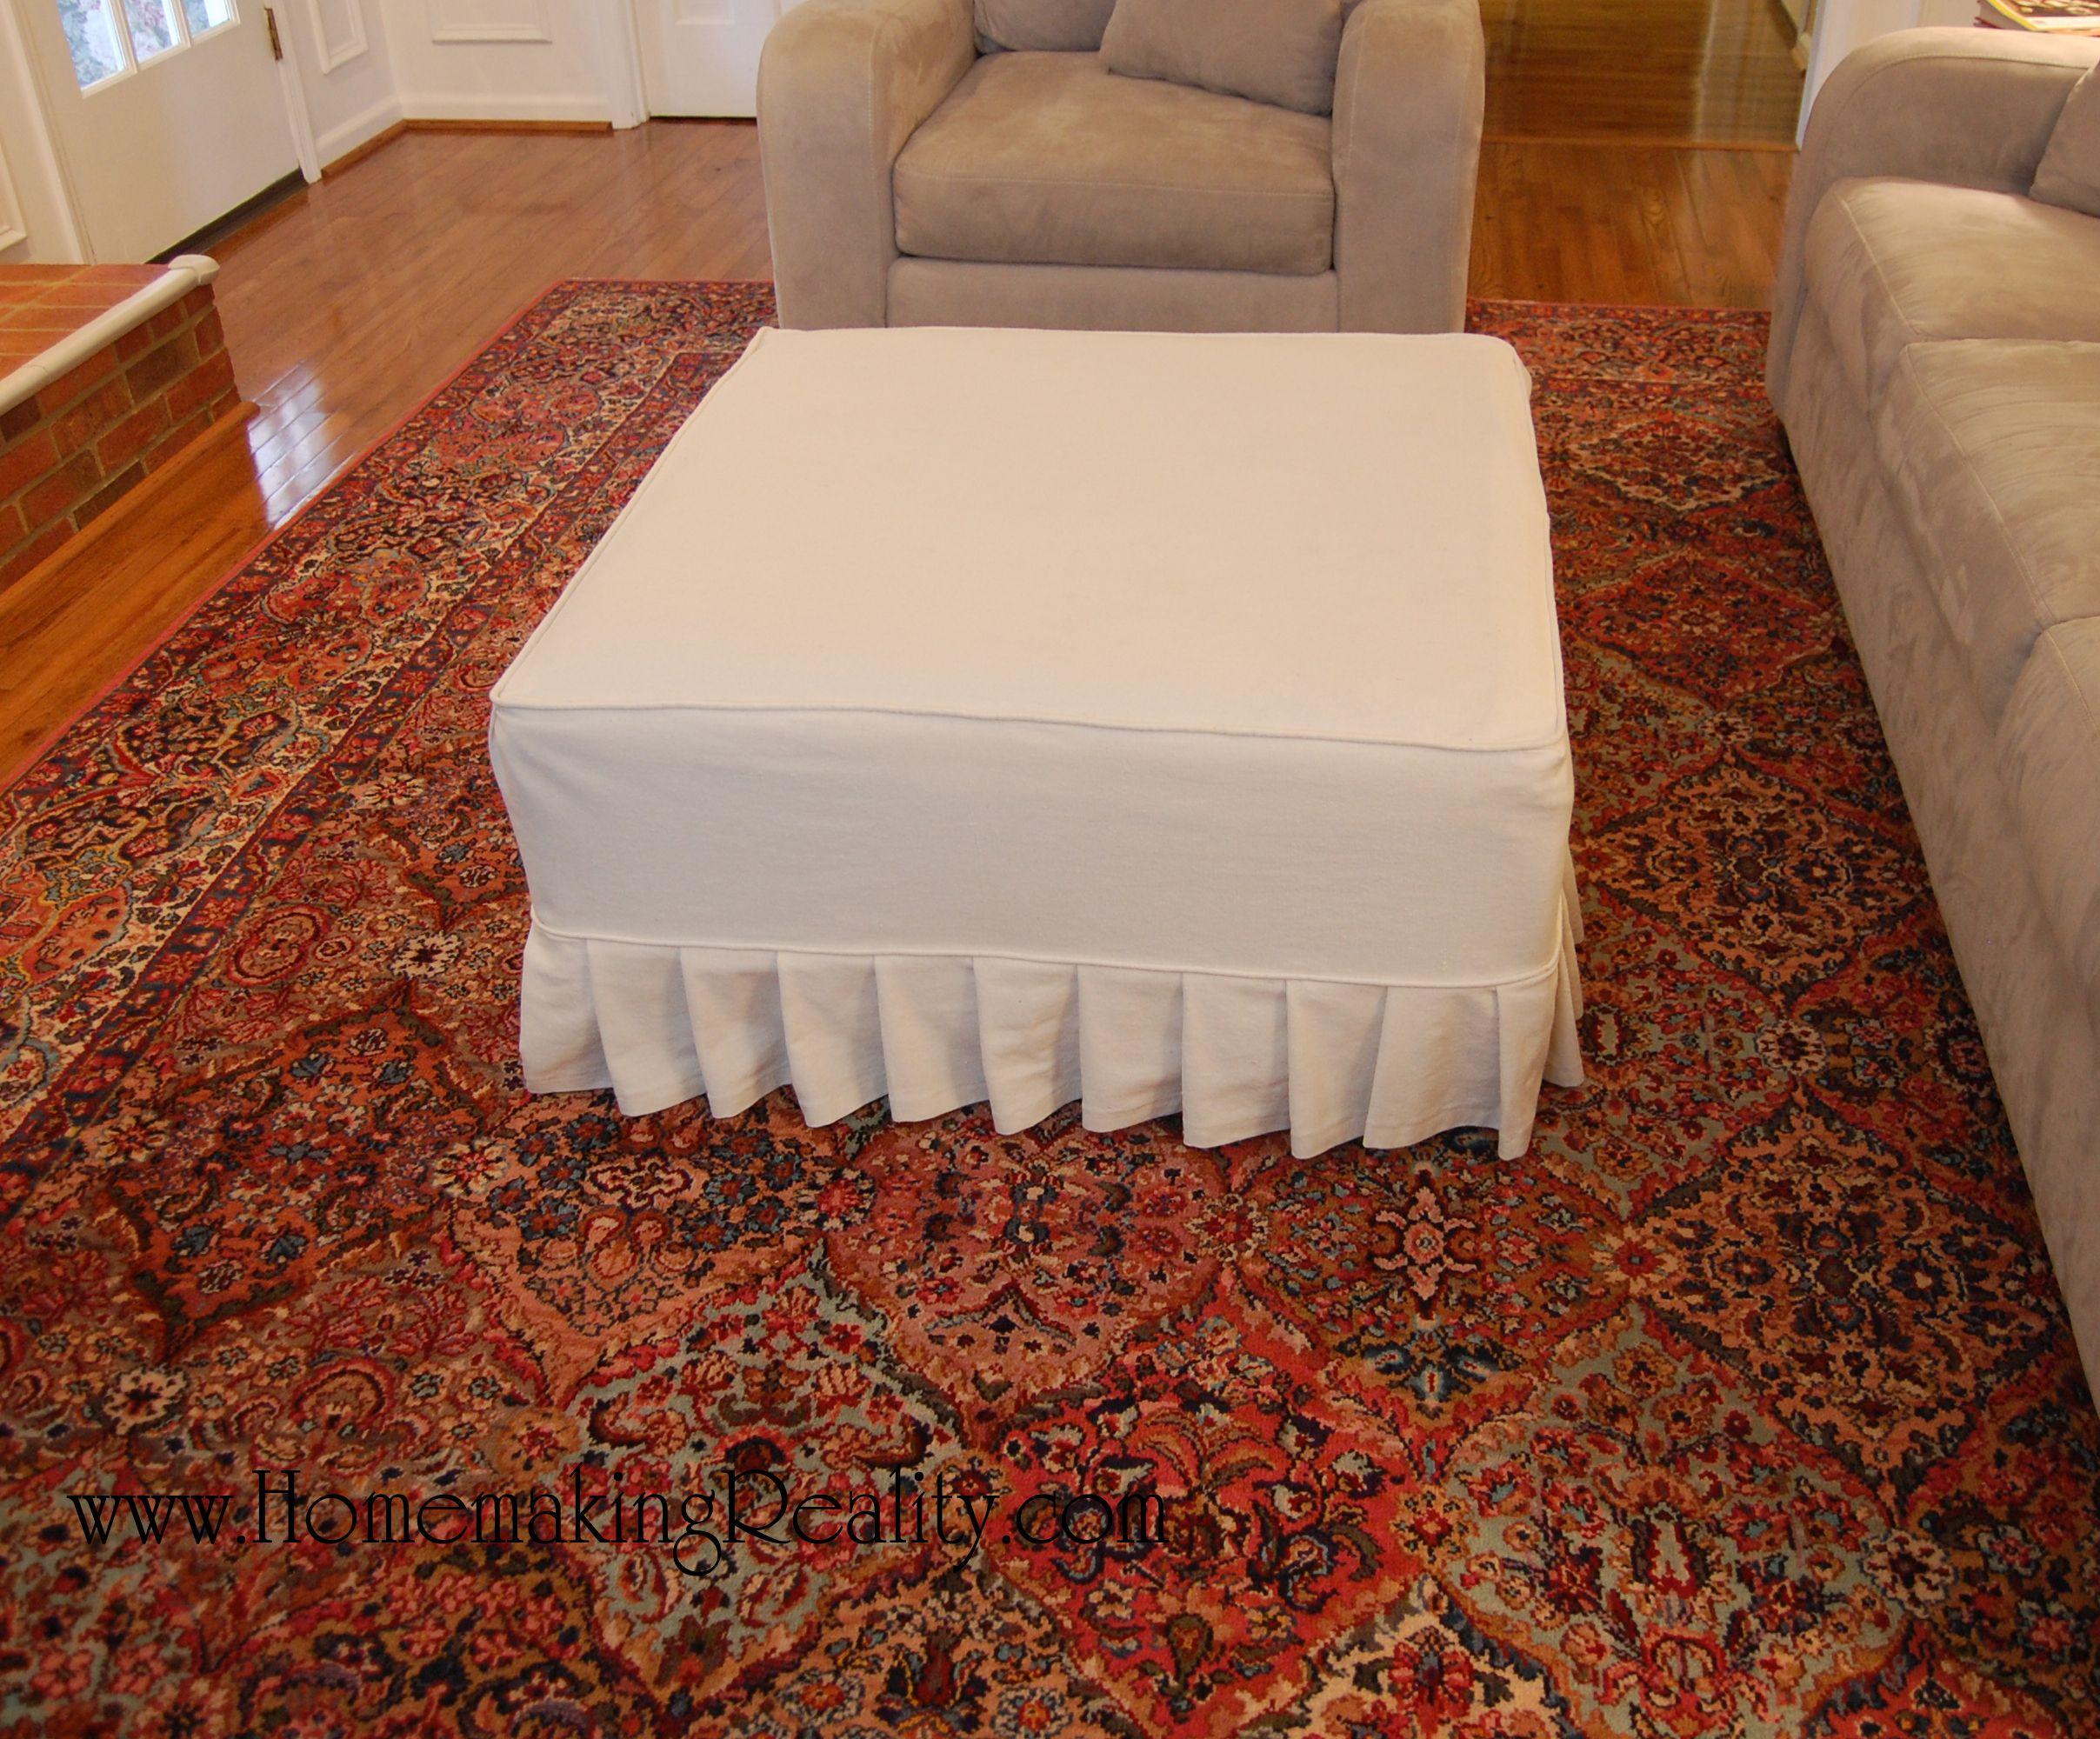 cover sofa with drop cloth